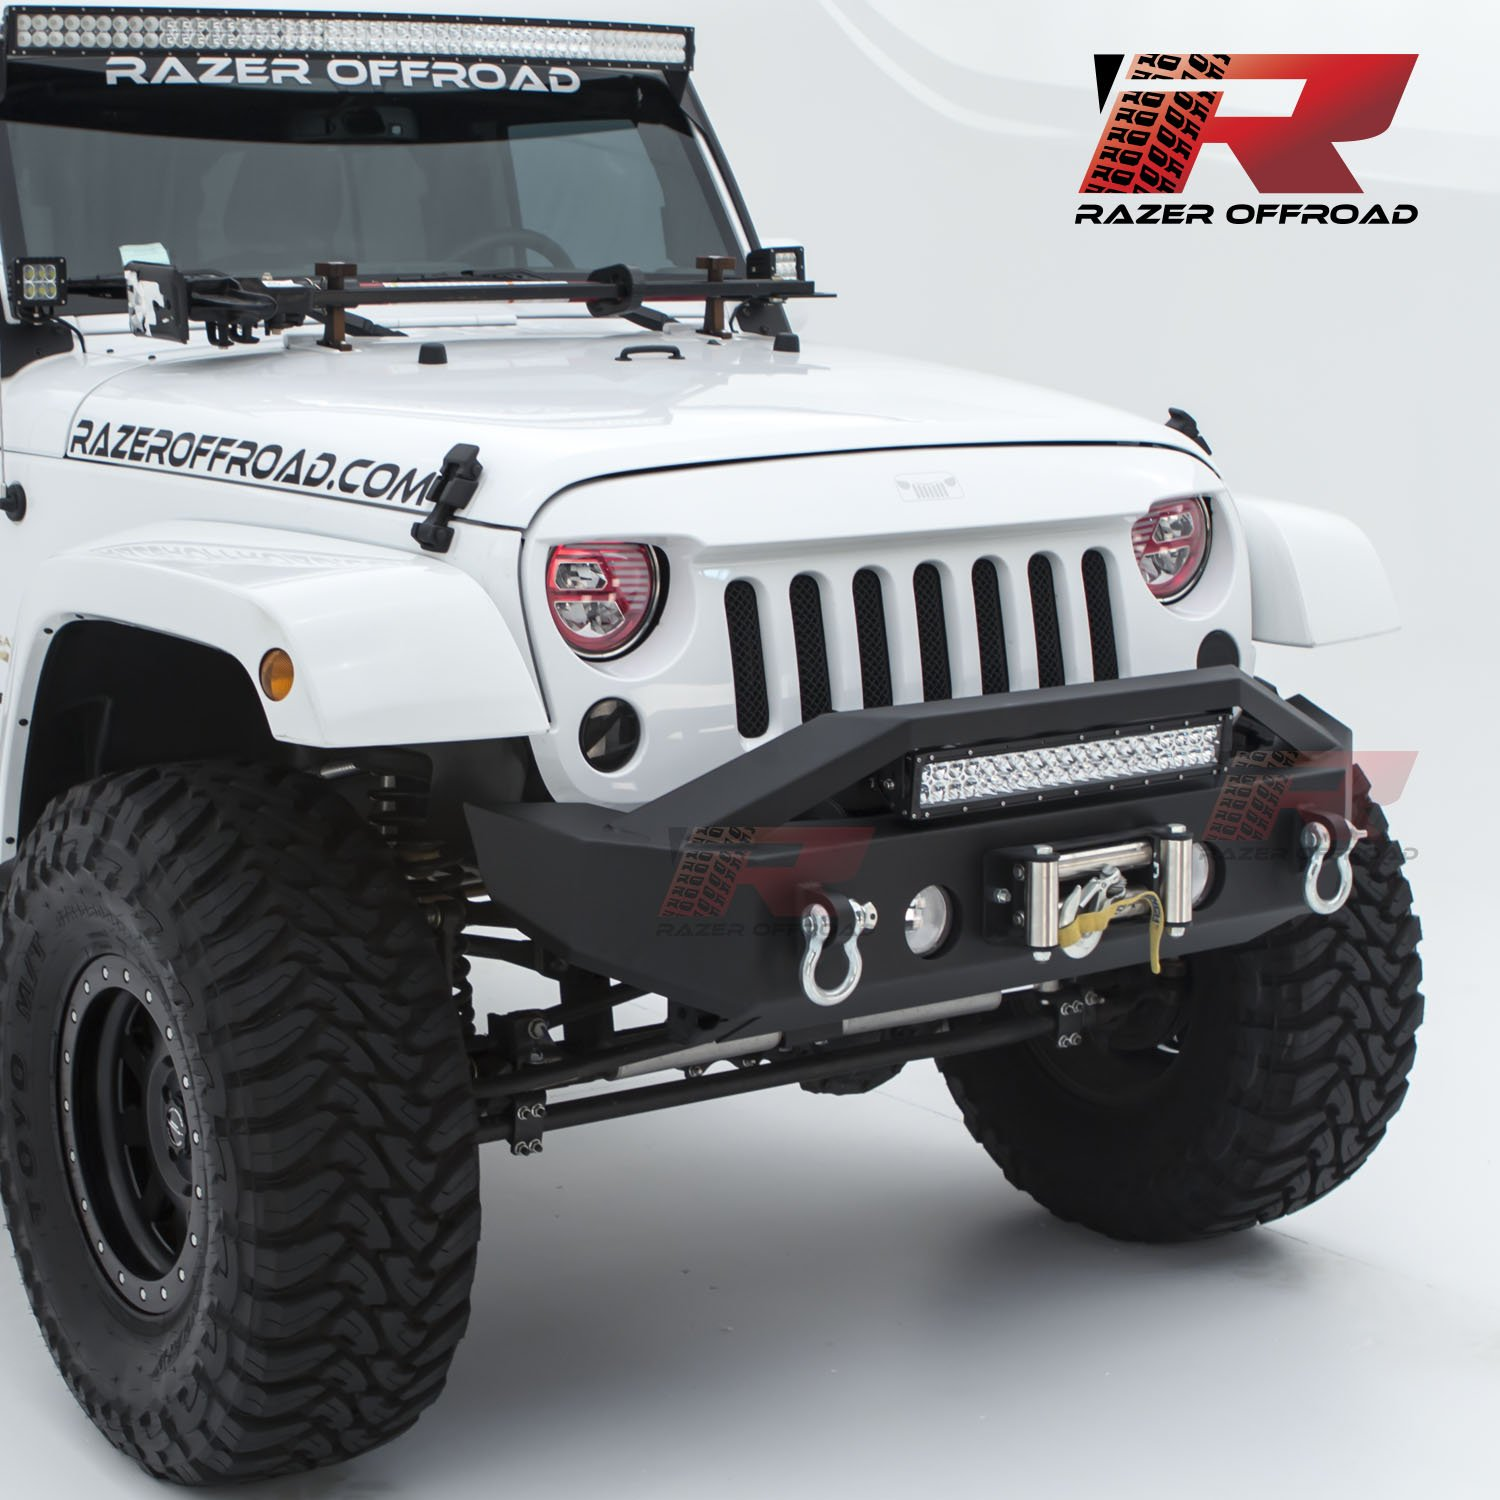 Razer Auto Black Textured Rock Crawler Front Bumper With Jeep Jk Fog Light Wiring Stubby Oe Hole 2x D Ring And Built In 22 Led Bar Mount Winch Plate For 07 18 Wrangler